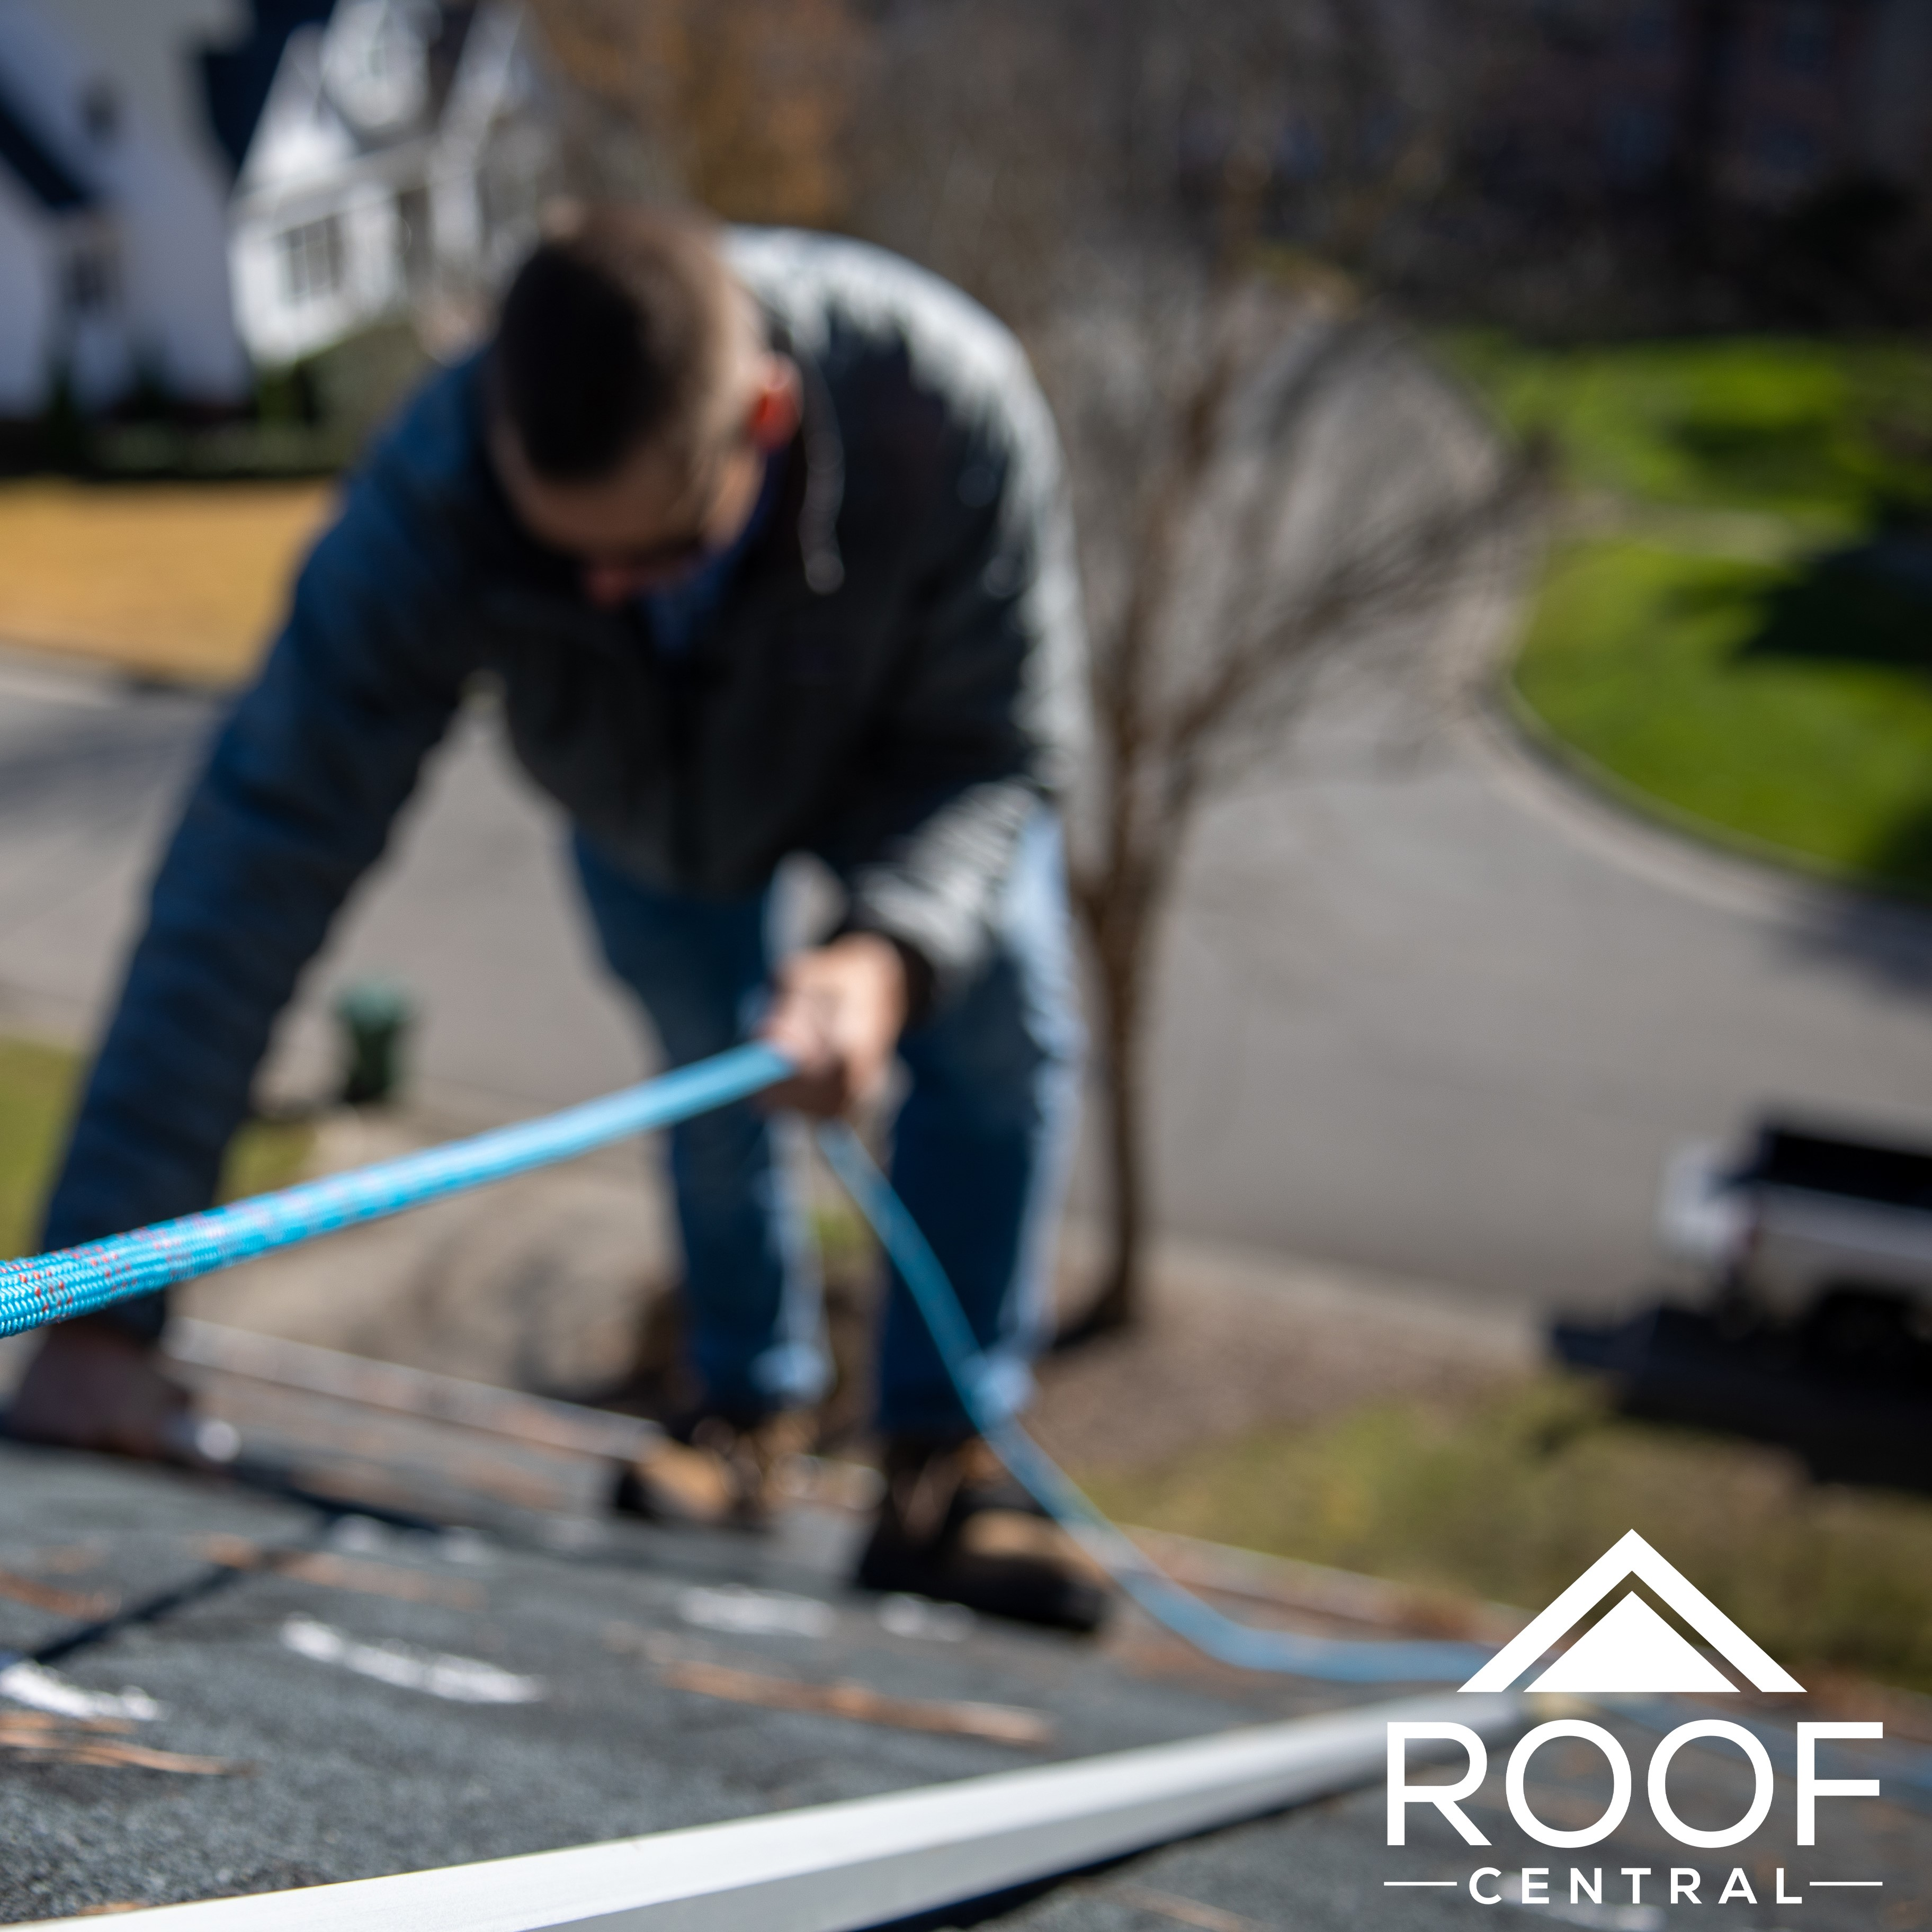 A roofer checking out a roof.